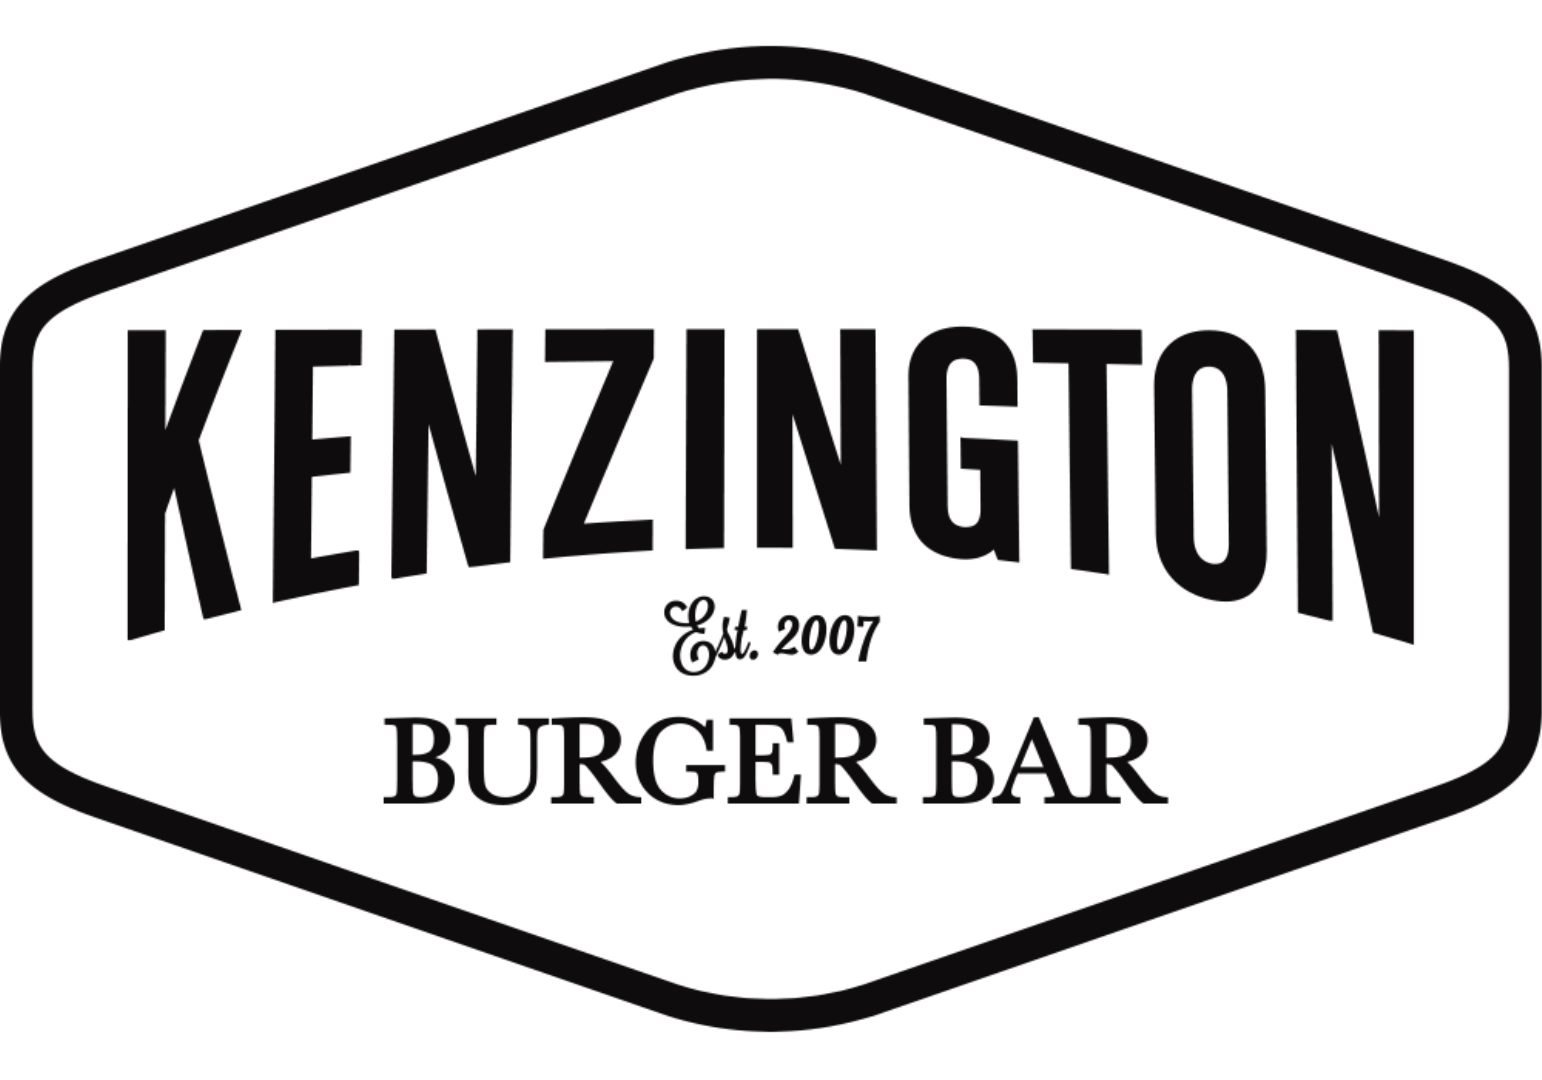 Kenzington Burger Bar - Barrie - Dunlop Restaurant - Picture